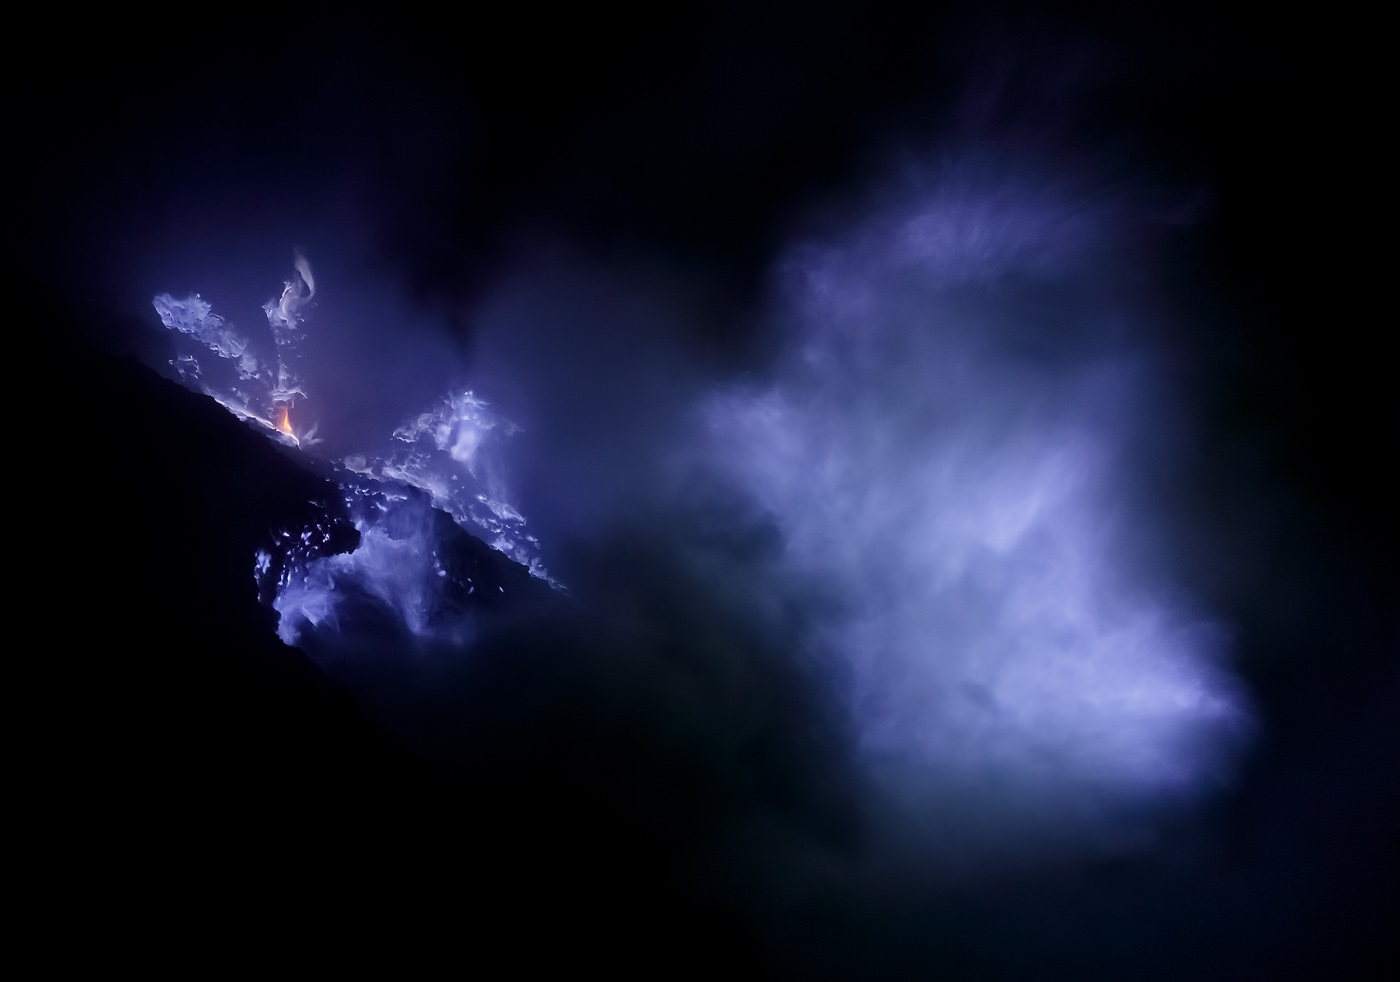 Thick smoke covers part of the fire, resulting in an interesting shot. Negative space is an important tool in images like this one – the darkness surrounding the purple fire conveys the atmosphere around the vent: a mysterious and sometimes frightening place where noxious smoke can engulf you before you know it.